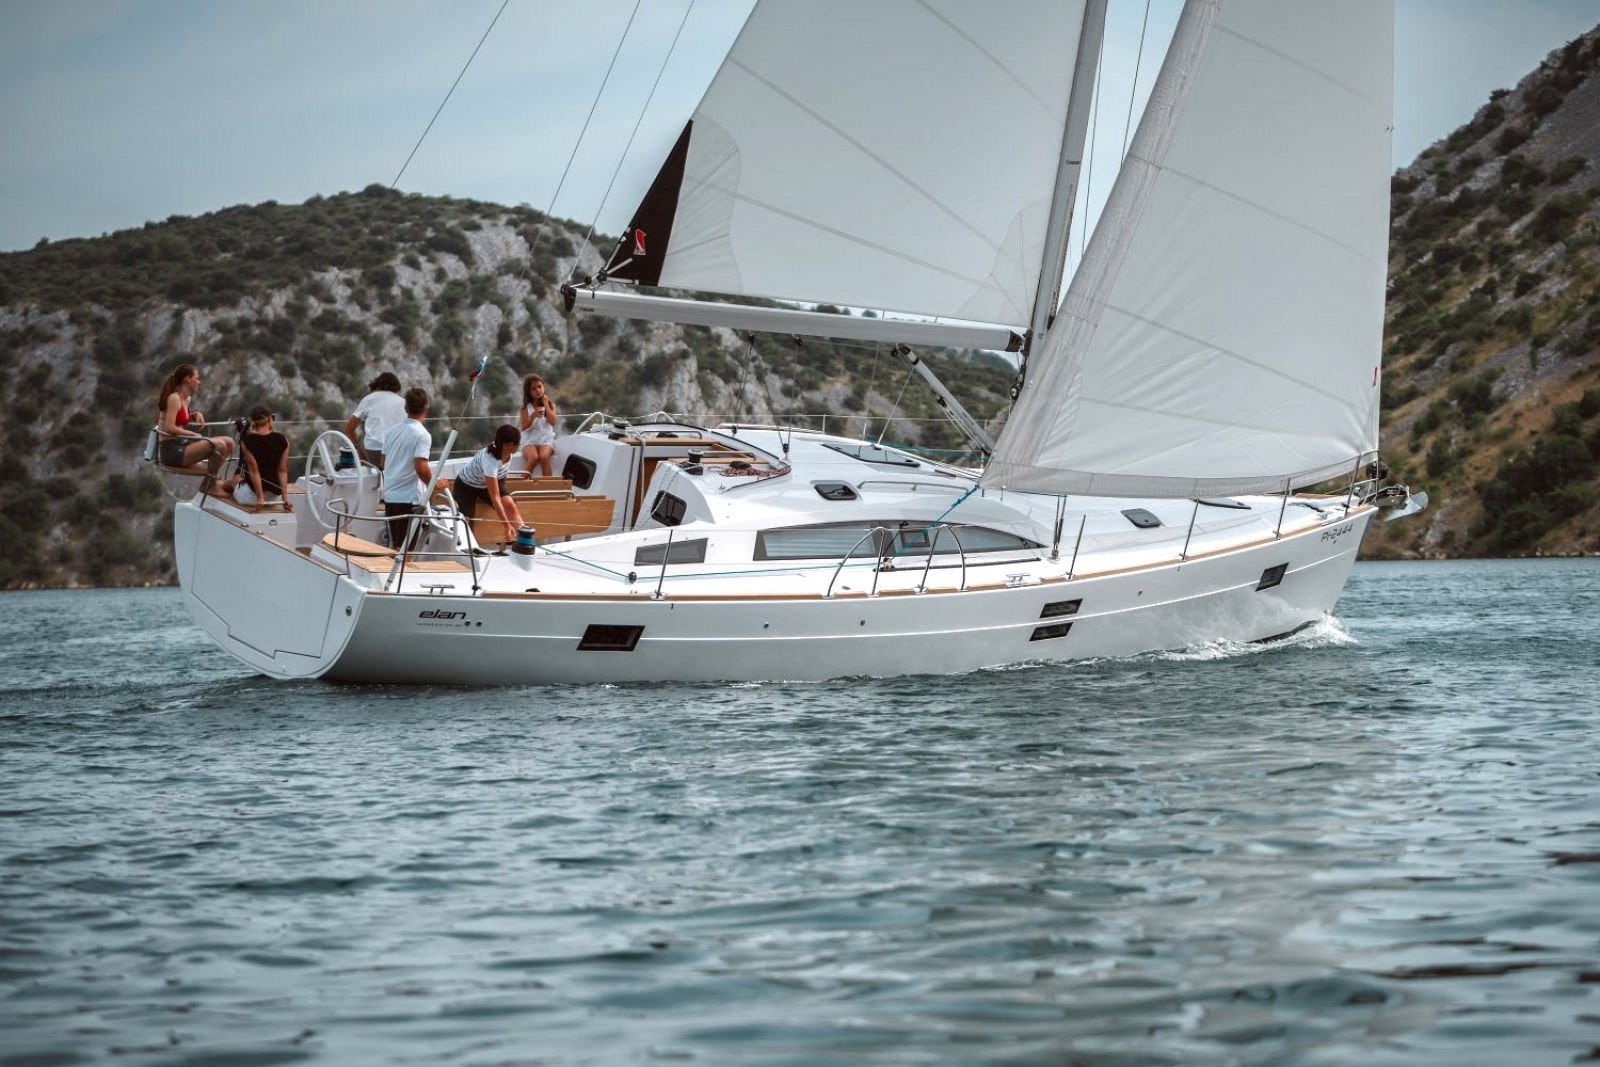 Elan Yachts Impression 45.1 Sailboat Running